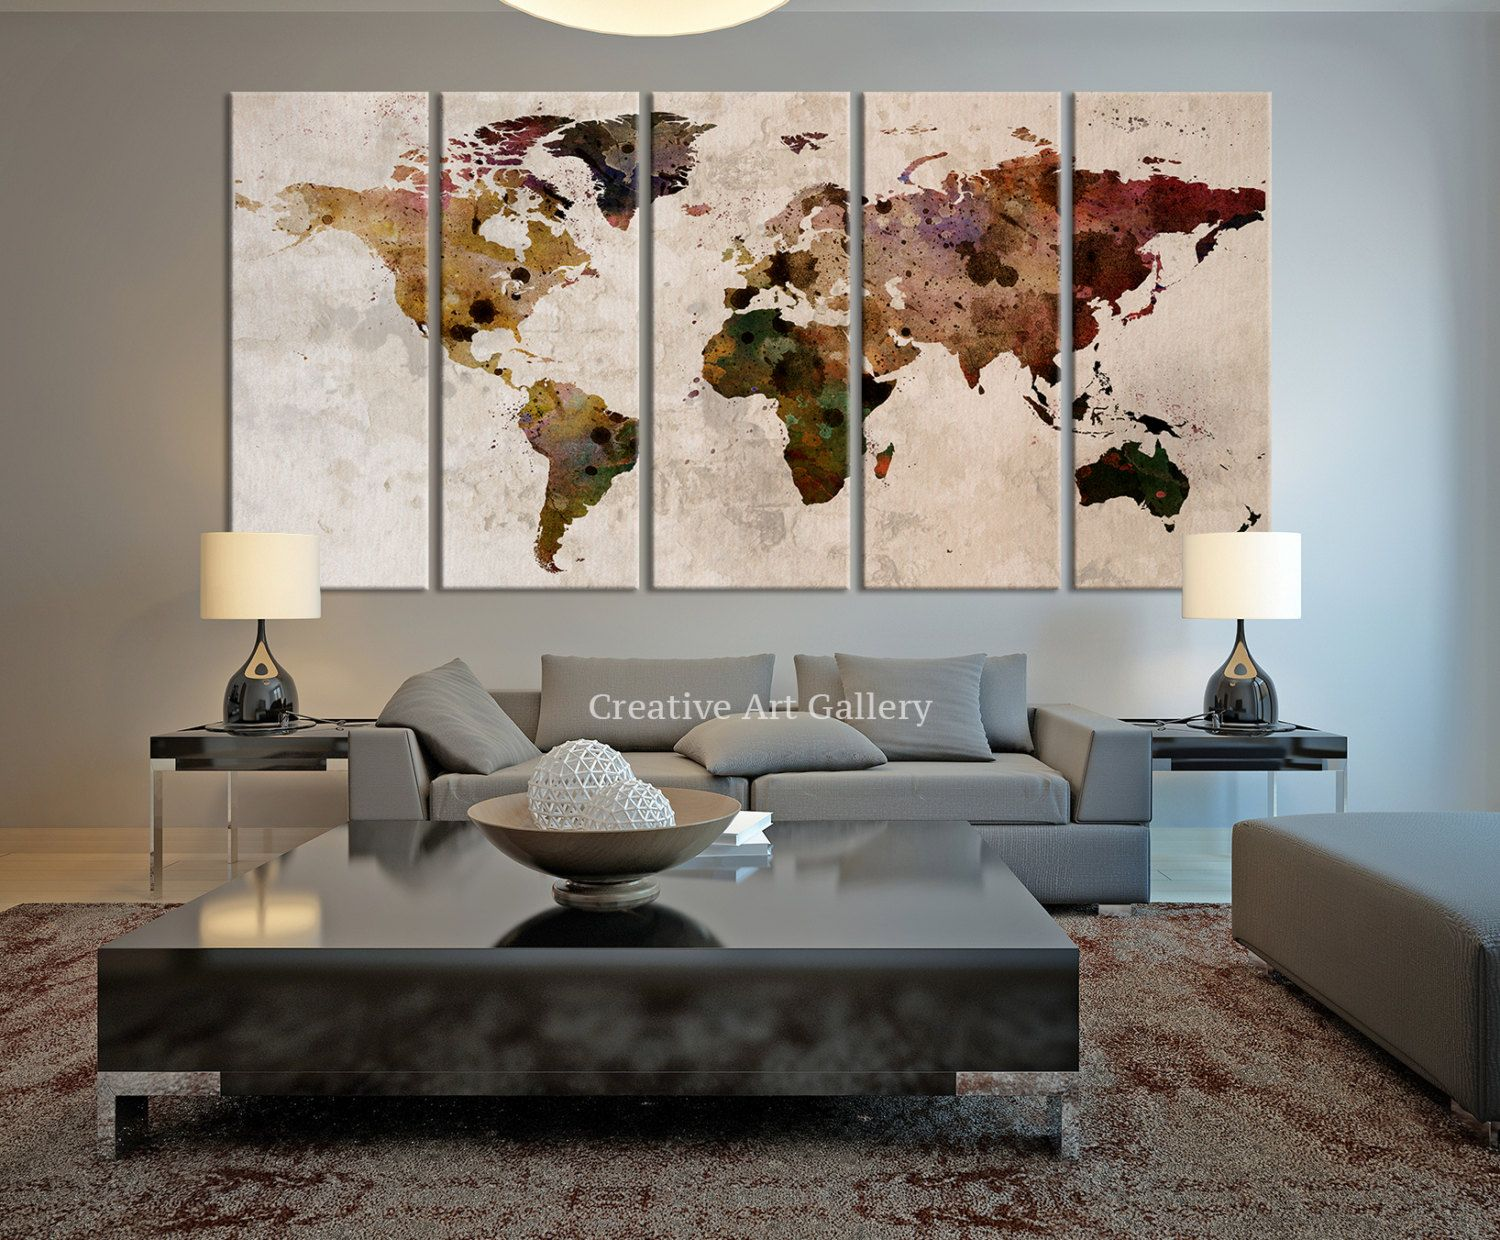 Large canvas print rustic world map large wall art world map art large canvas print rustic world map large wall art world map art extra large amipublicfo Gallery